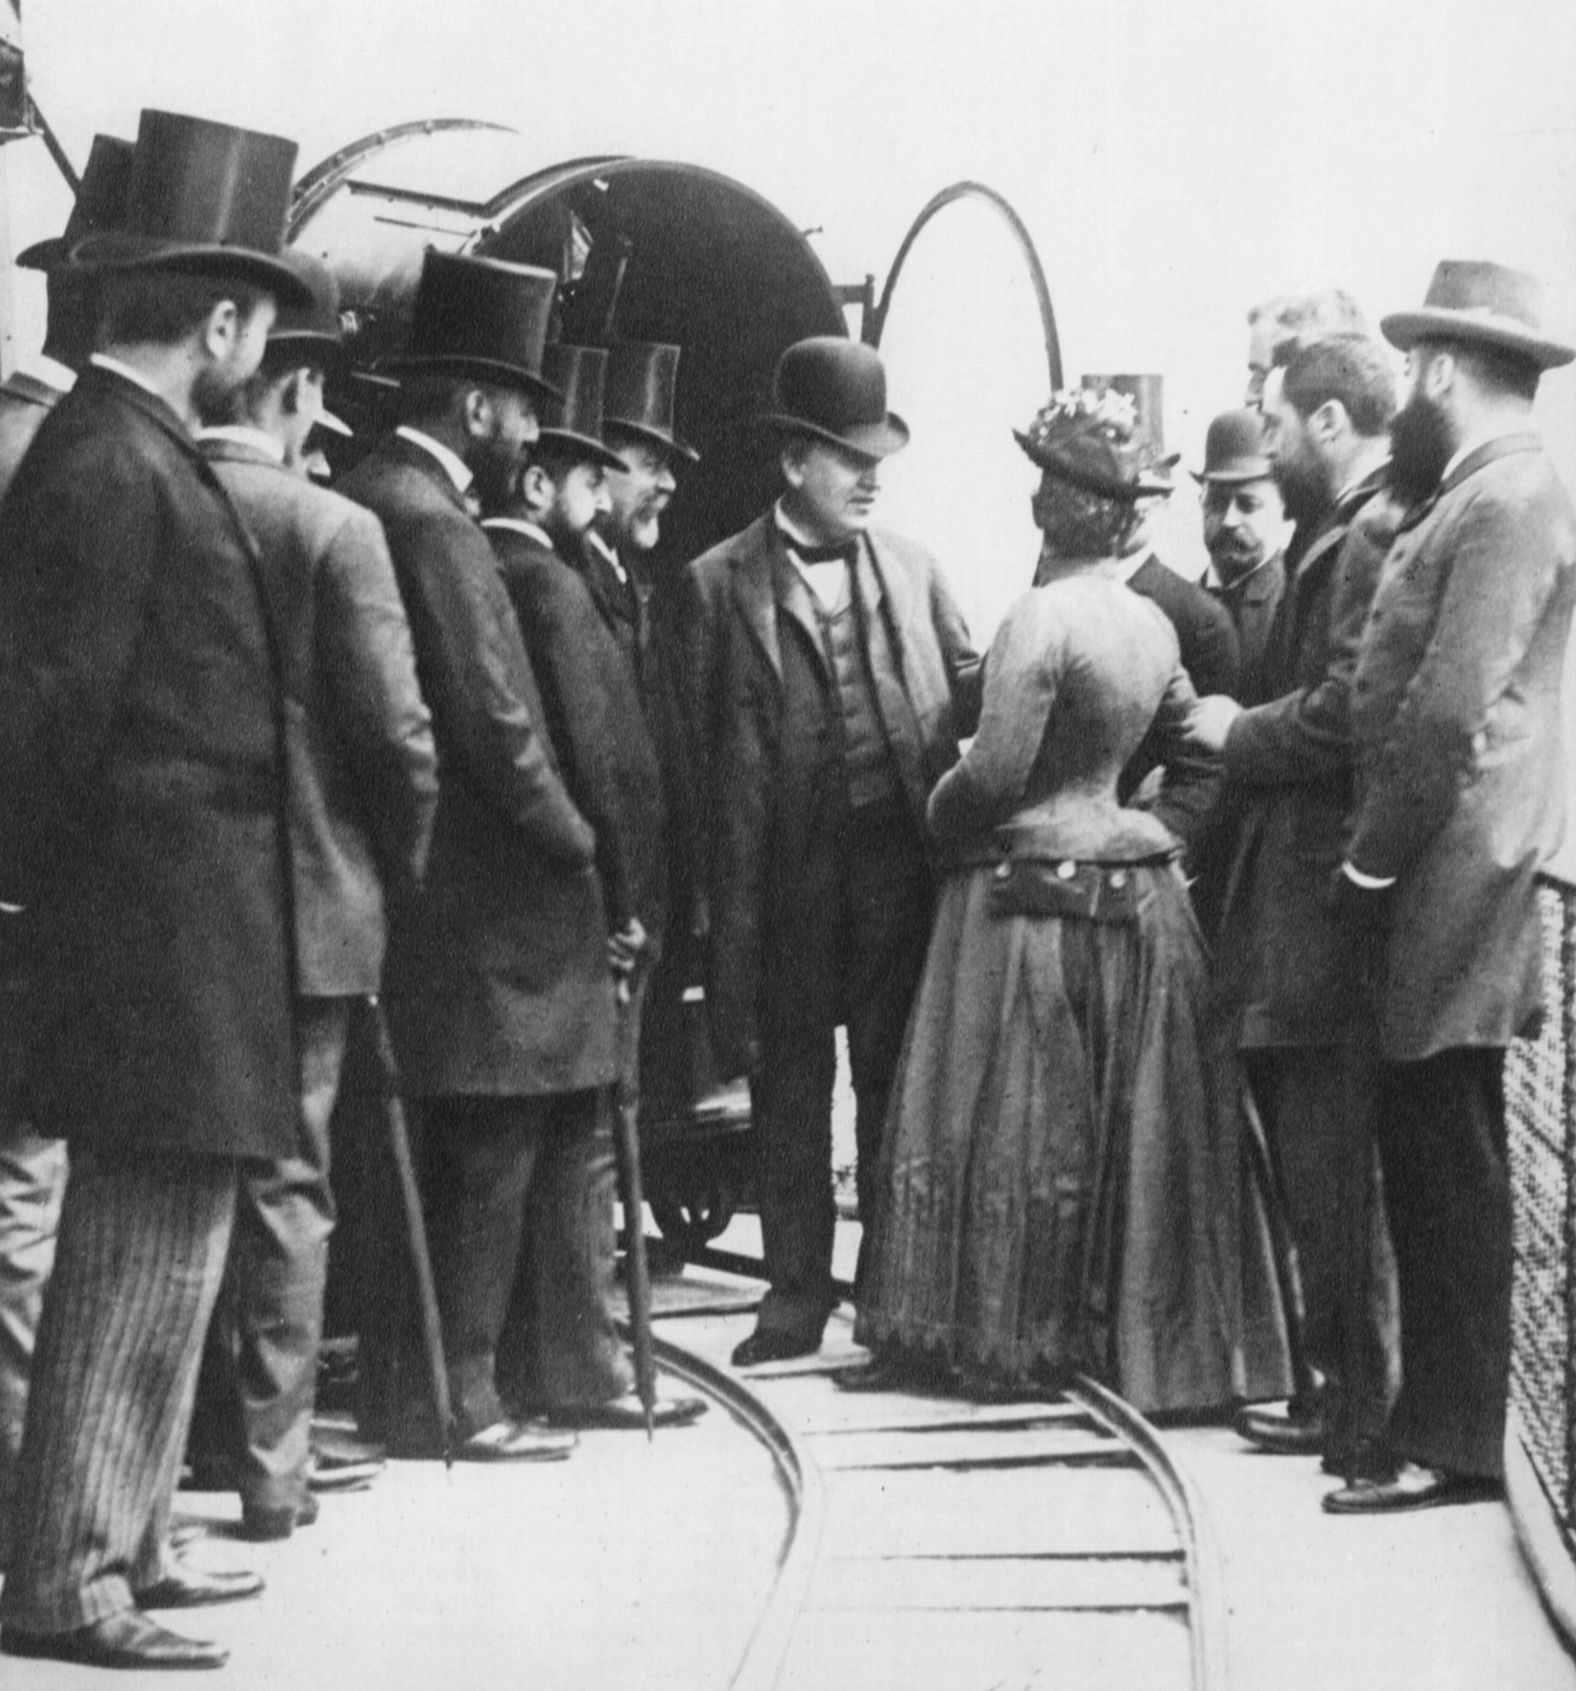 T.A. Edison and entourage at the Eiffel tower, 1889.jpg